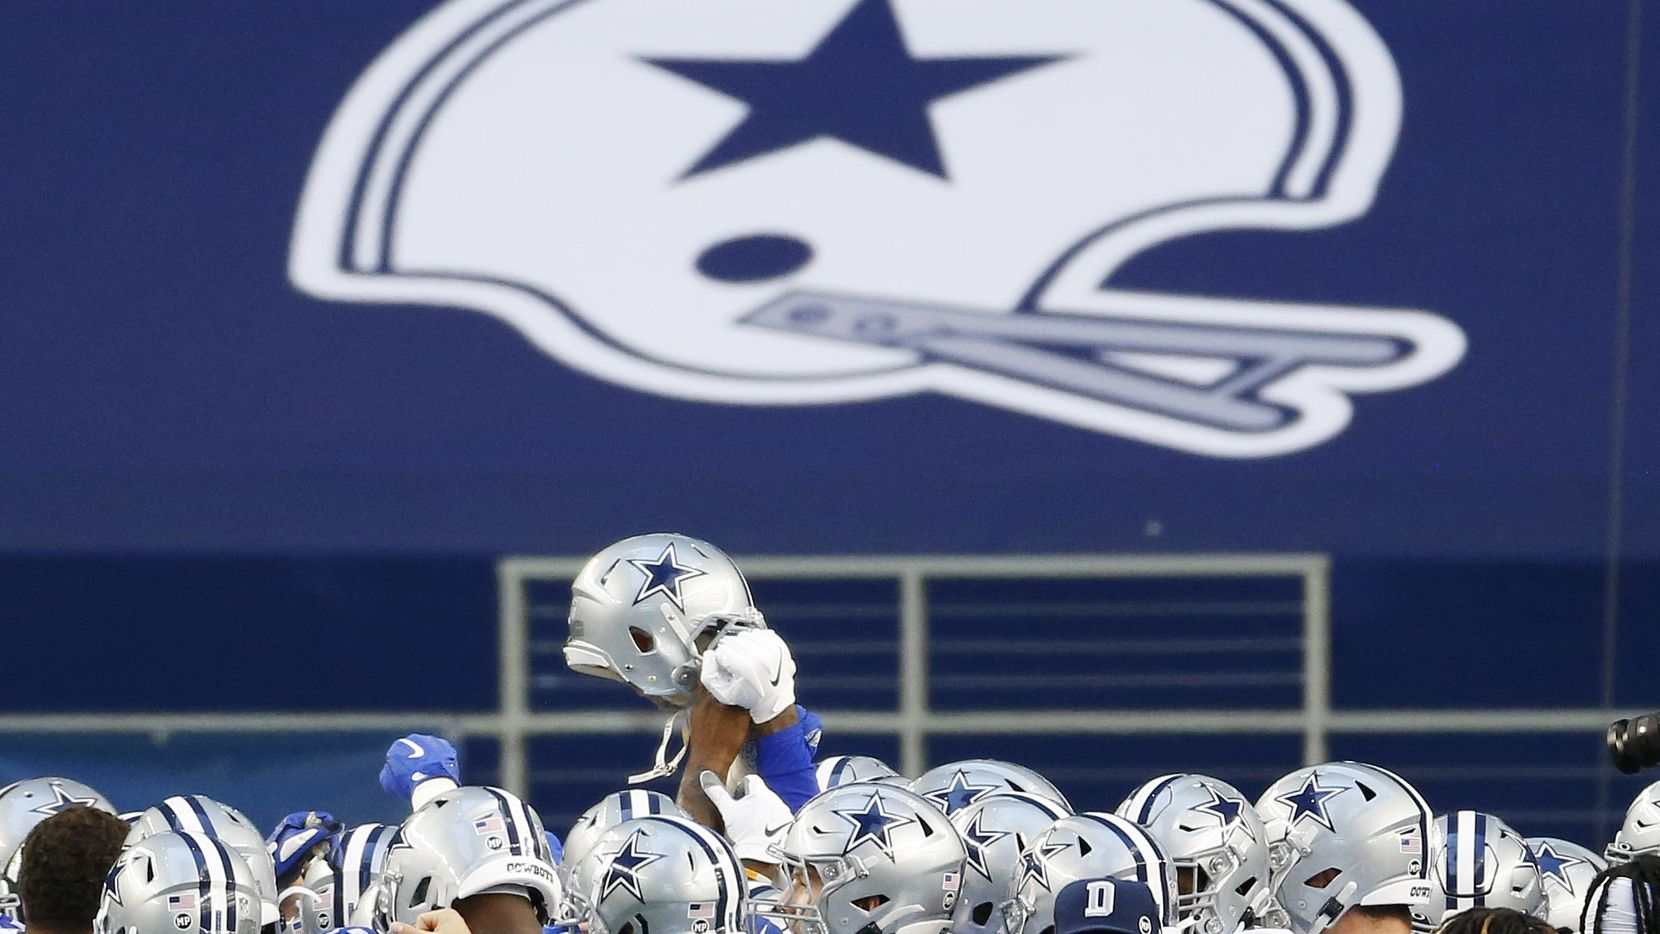 The Cowboys hoist a helmet after finishing warmups for a game against the 49ers at AT&T Stadium on Sunday, Dec. 20, 2020, in Arlington.